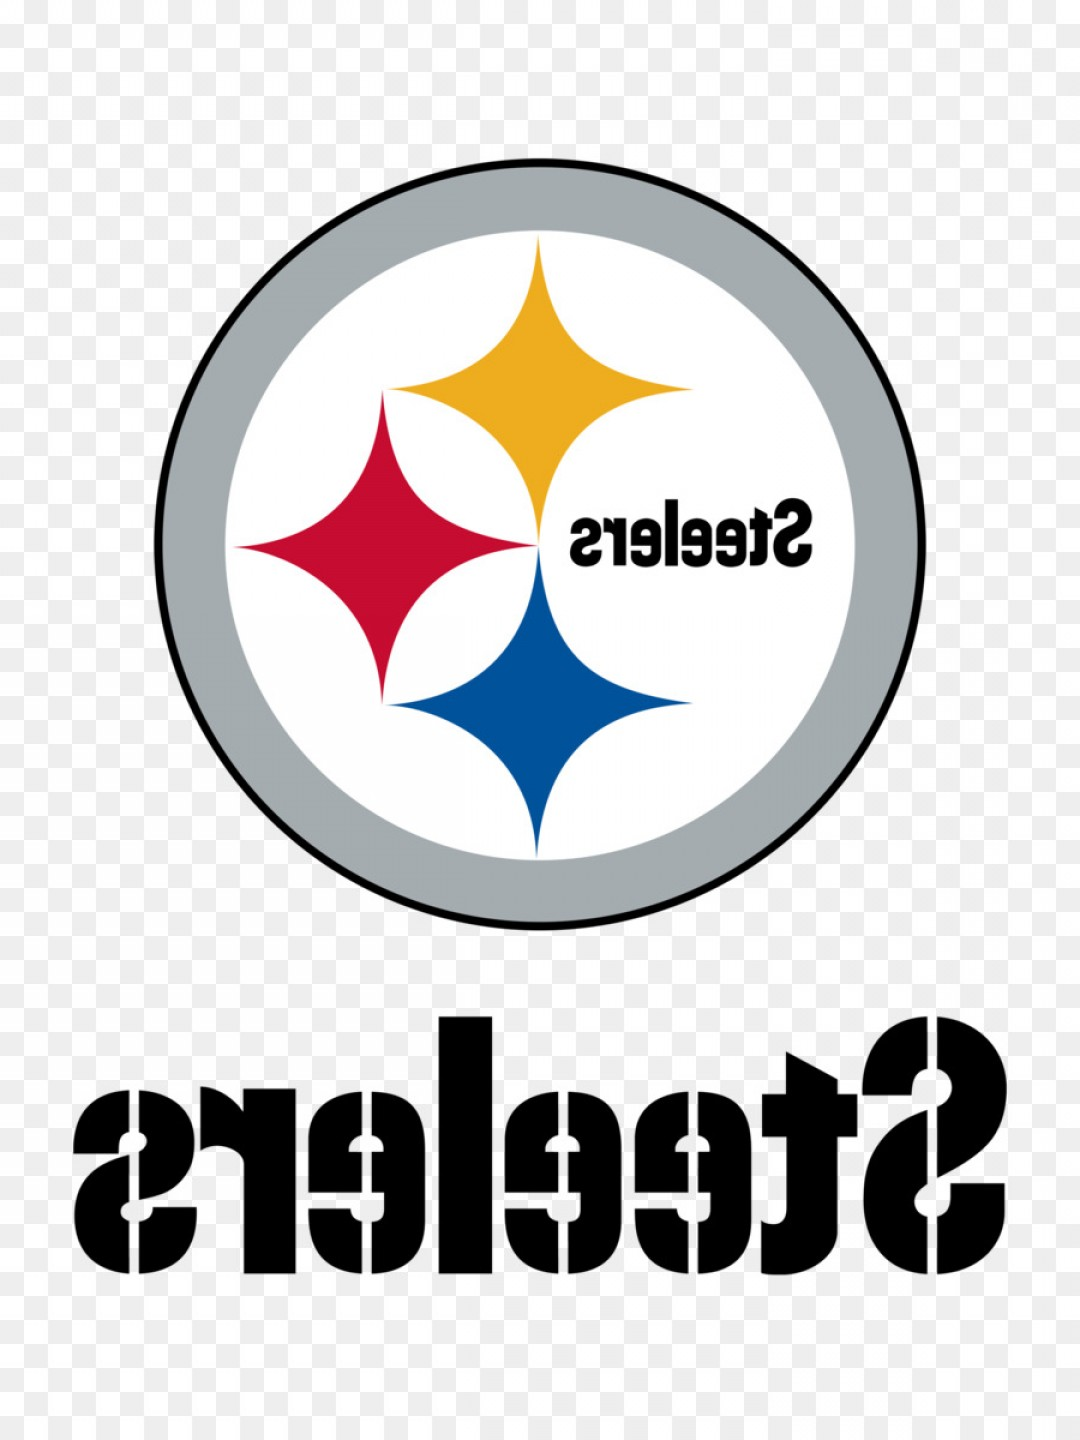 Indianapolis Colts Logo Vector: Png Logos And Uniforms Of The Pittsburgh Steelers Nfl